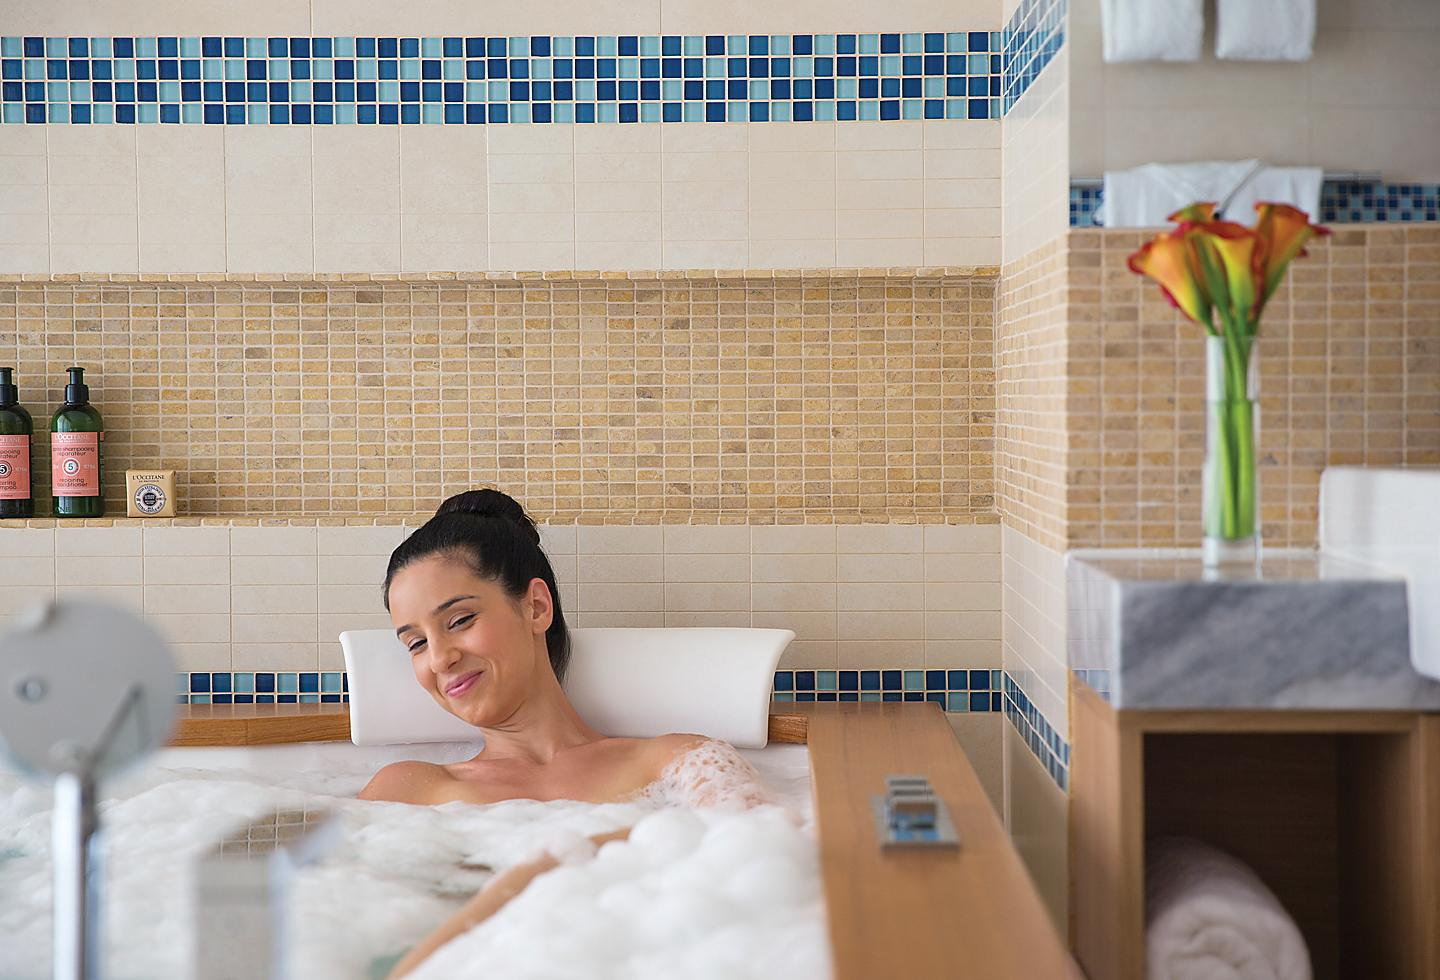 Woman Relaxing and Taking Bubble Bath